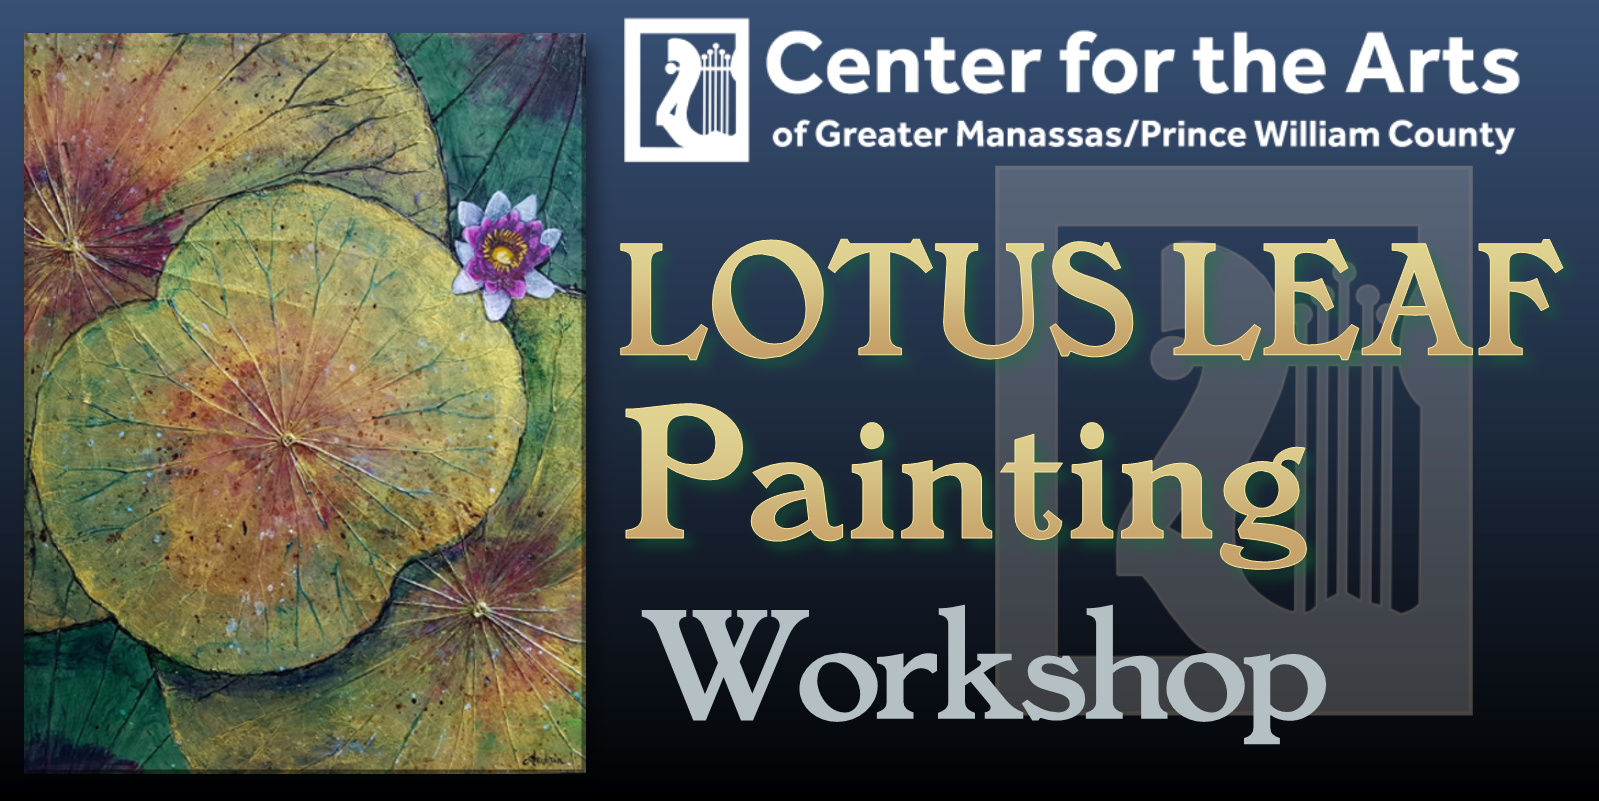 Lotus leaf painting workshop prince william living experience an authentic lotus leaf painting workshop in the tradition originated in himapan gallery of thailand with studios thriving in new york paris izmirmasajfo